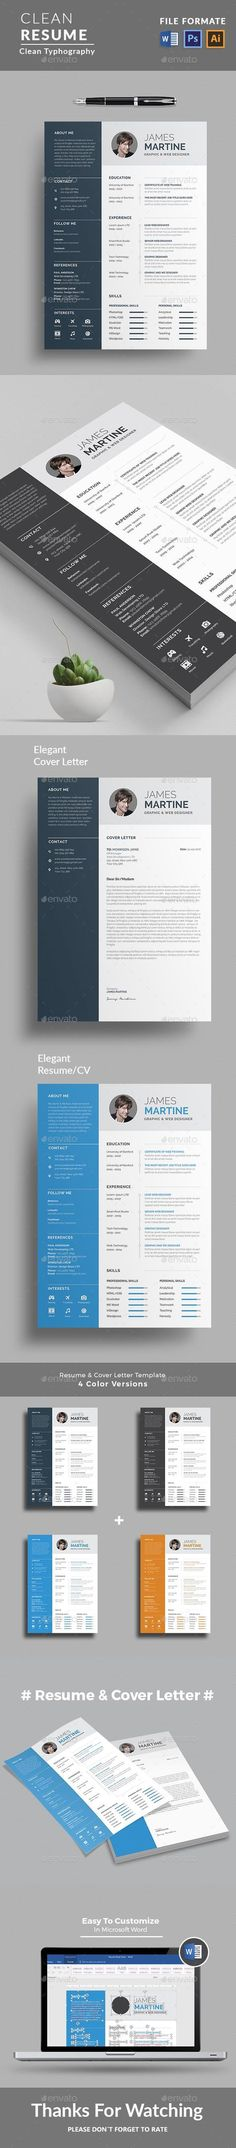 """This is Resume Templates . """" Resume Templates """" is the super clean,The flexible page designs are easy to use and customize, modern and professional Resume templates to help you land that great job, you a need a great resume. Download here: https://graphicriver.net/item/resume/19276022?ref=classicdesignp"""